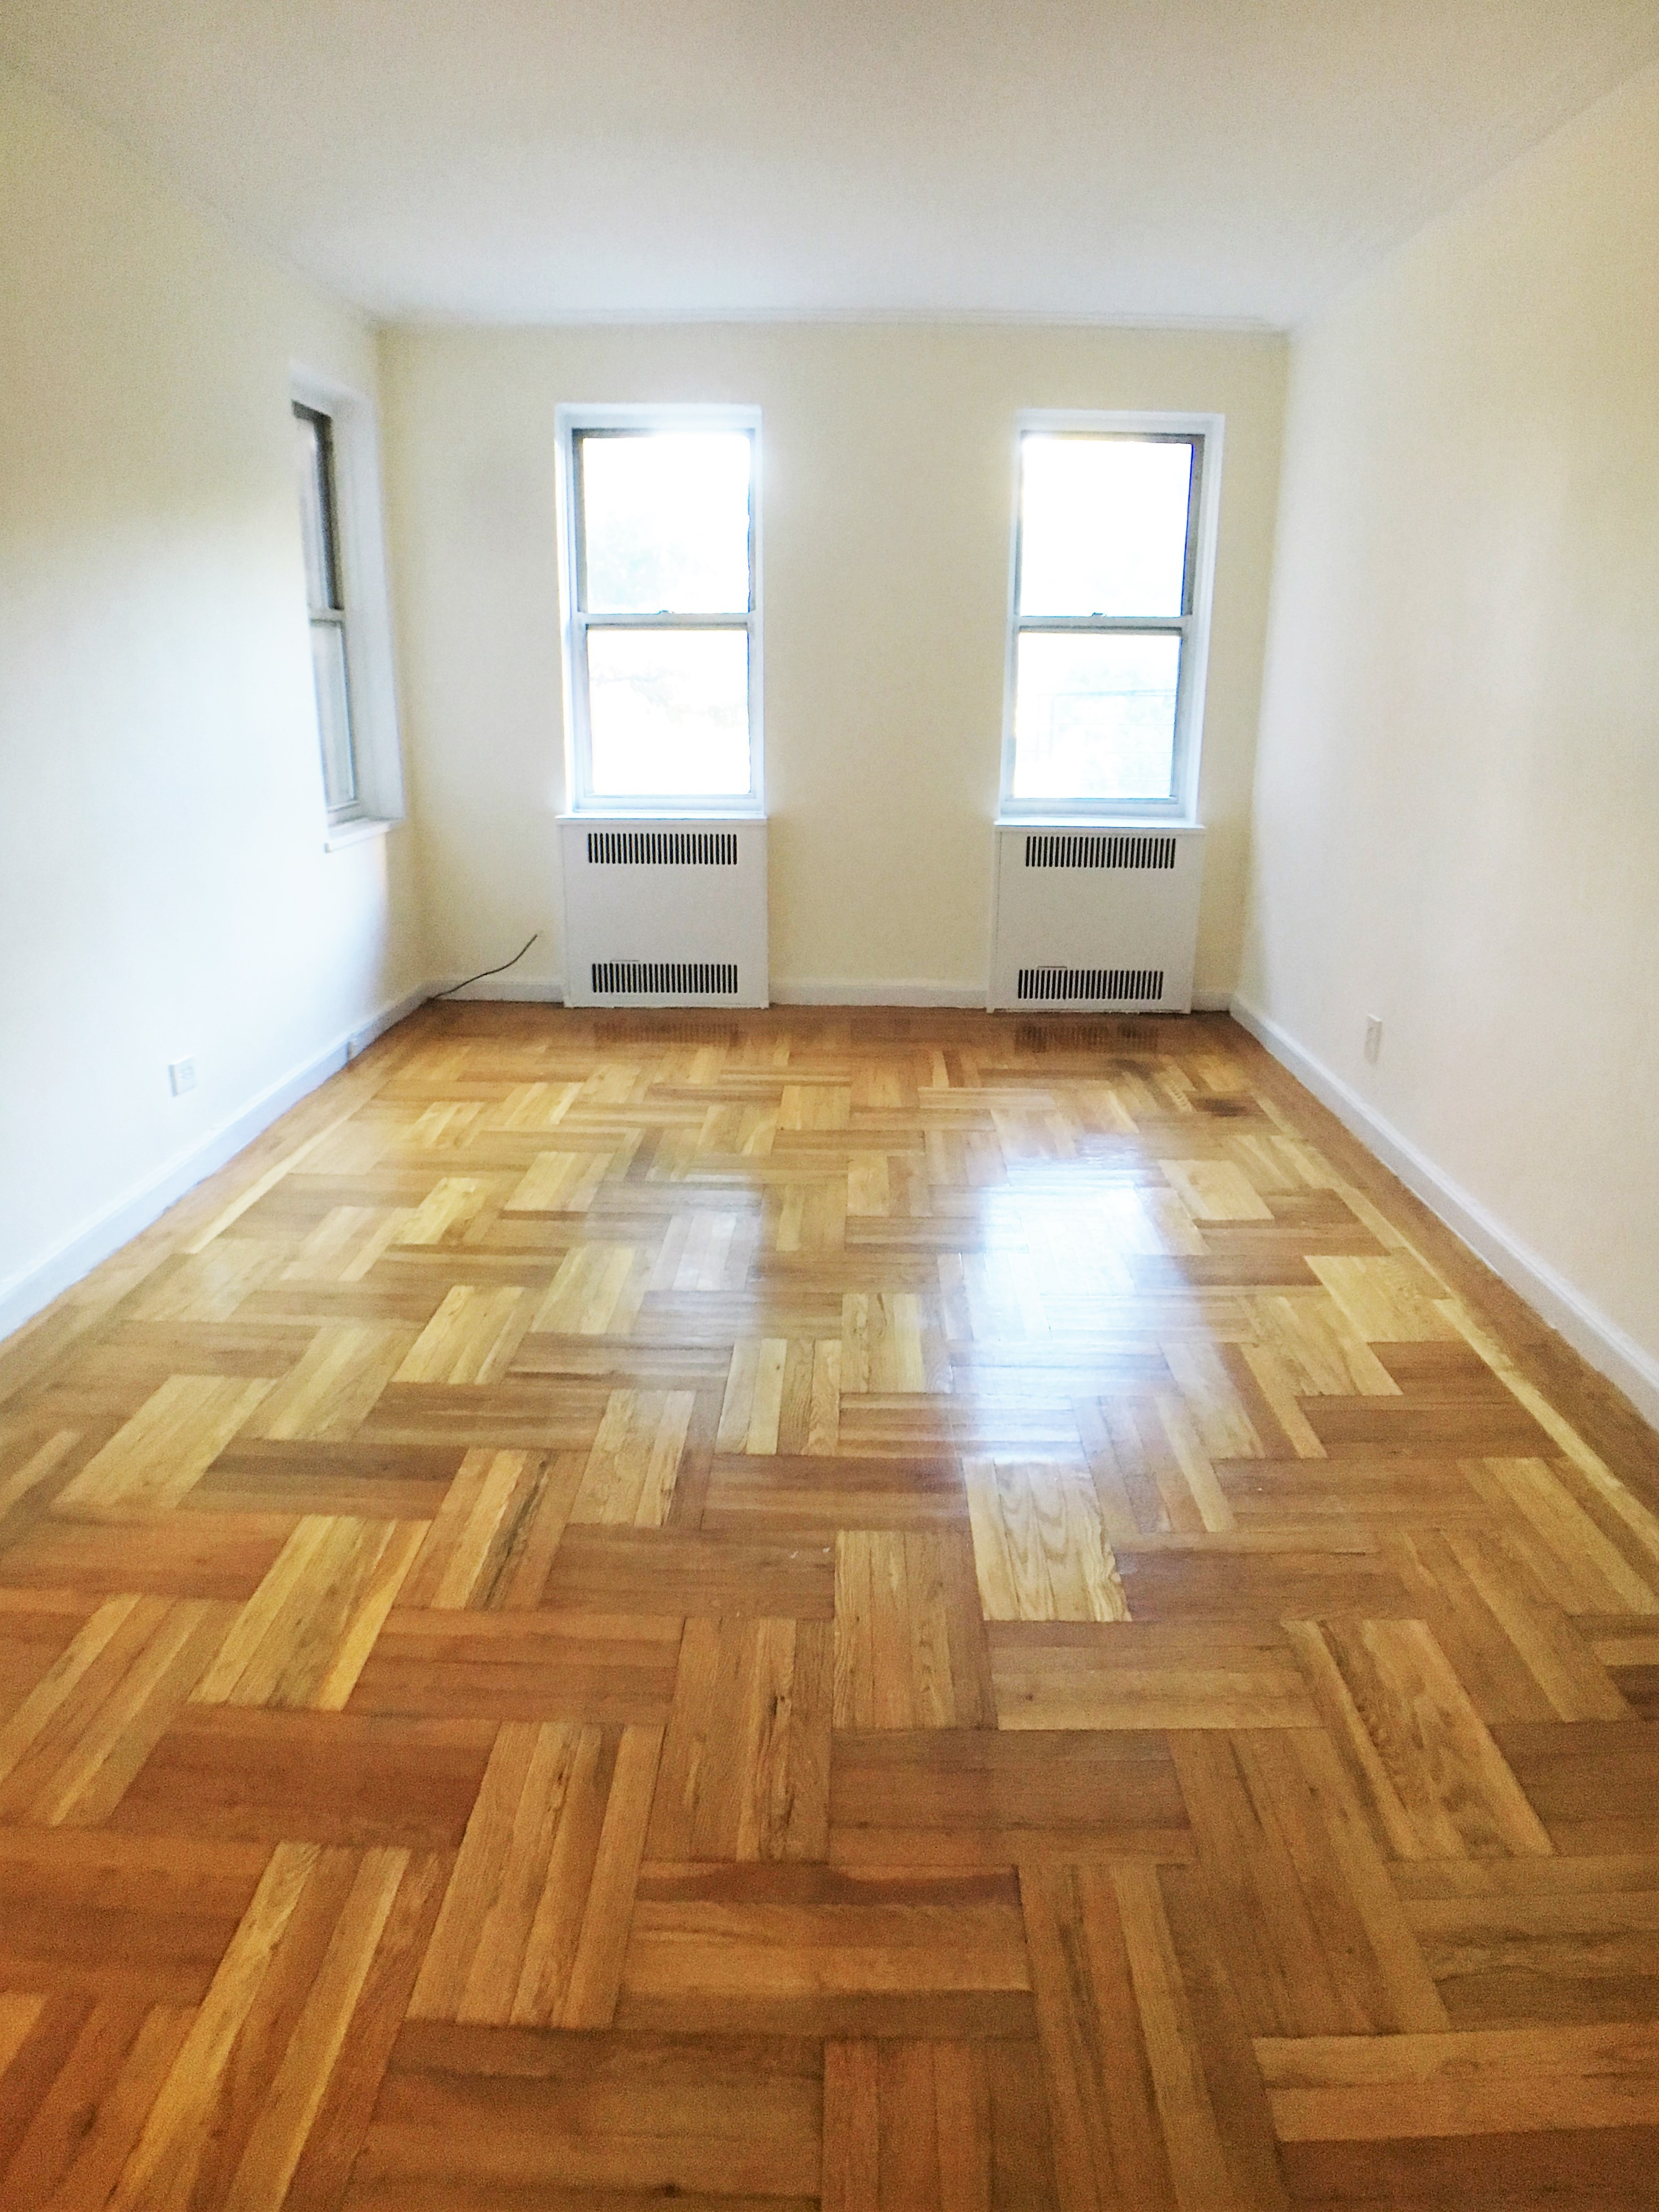 140 Van Cortlandt Park South 3h Bronx Ny 10463 1 Bedroom Apartment For Rent For 1 575 Month